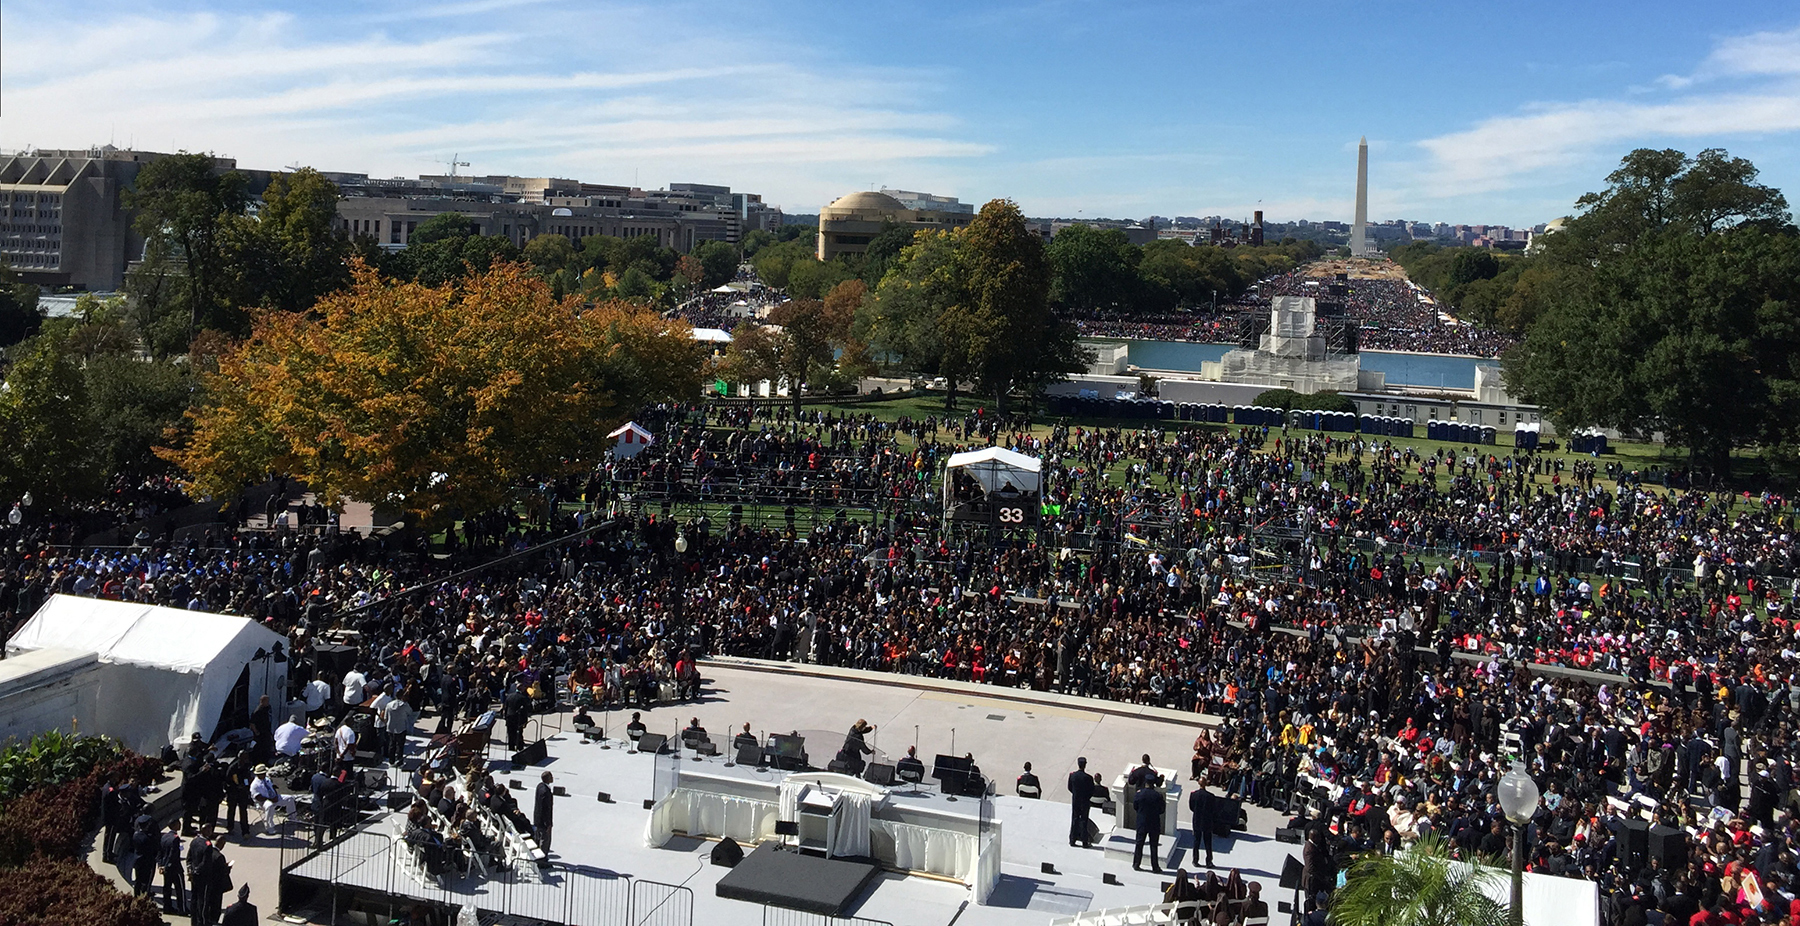 Thousands gathered to celebrate the 20th anniversary of the Million Man March on the National Mall in Washington, D.C.